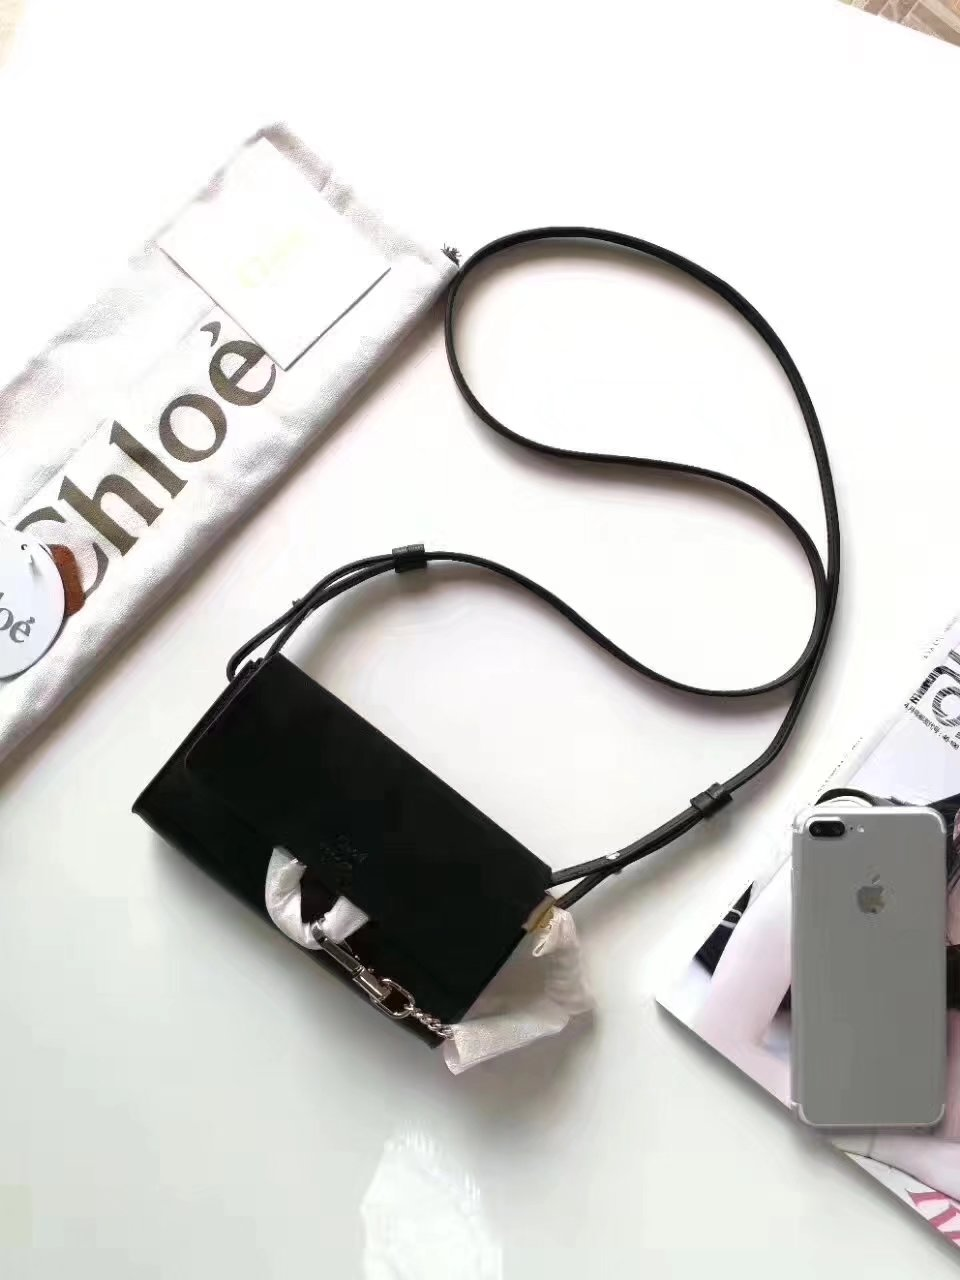 Original Chloe Faye Long Wallet in Smooth and Suede Calfskin with Adjustable Strap Black